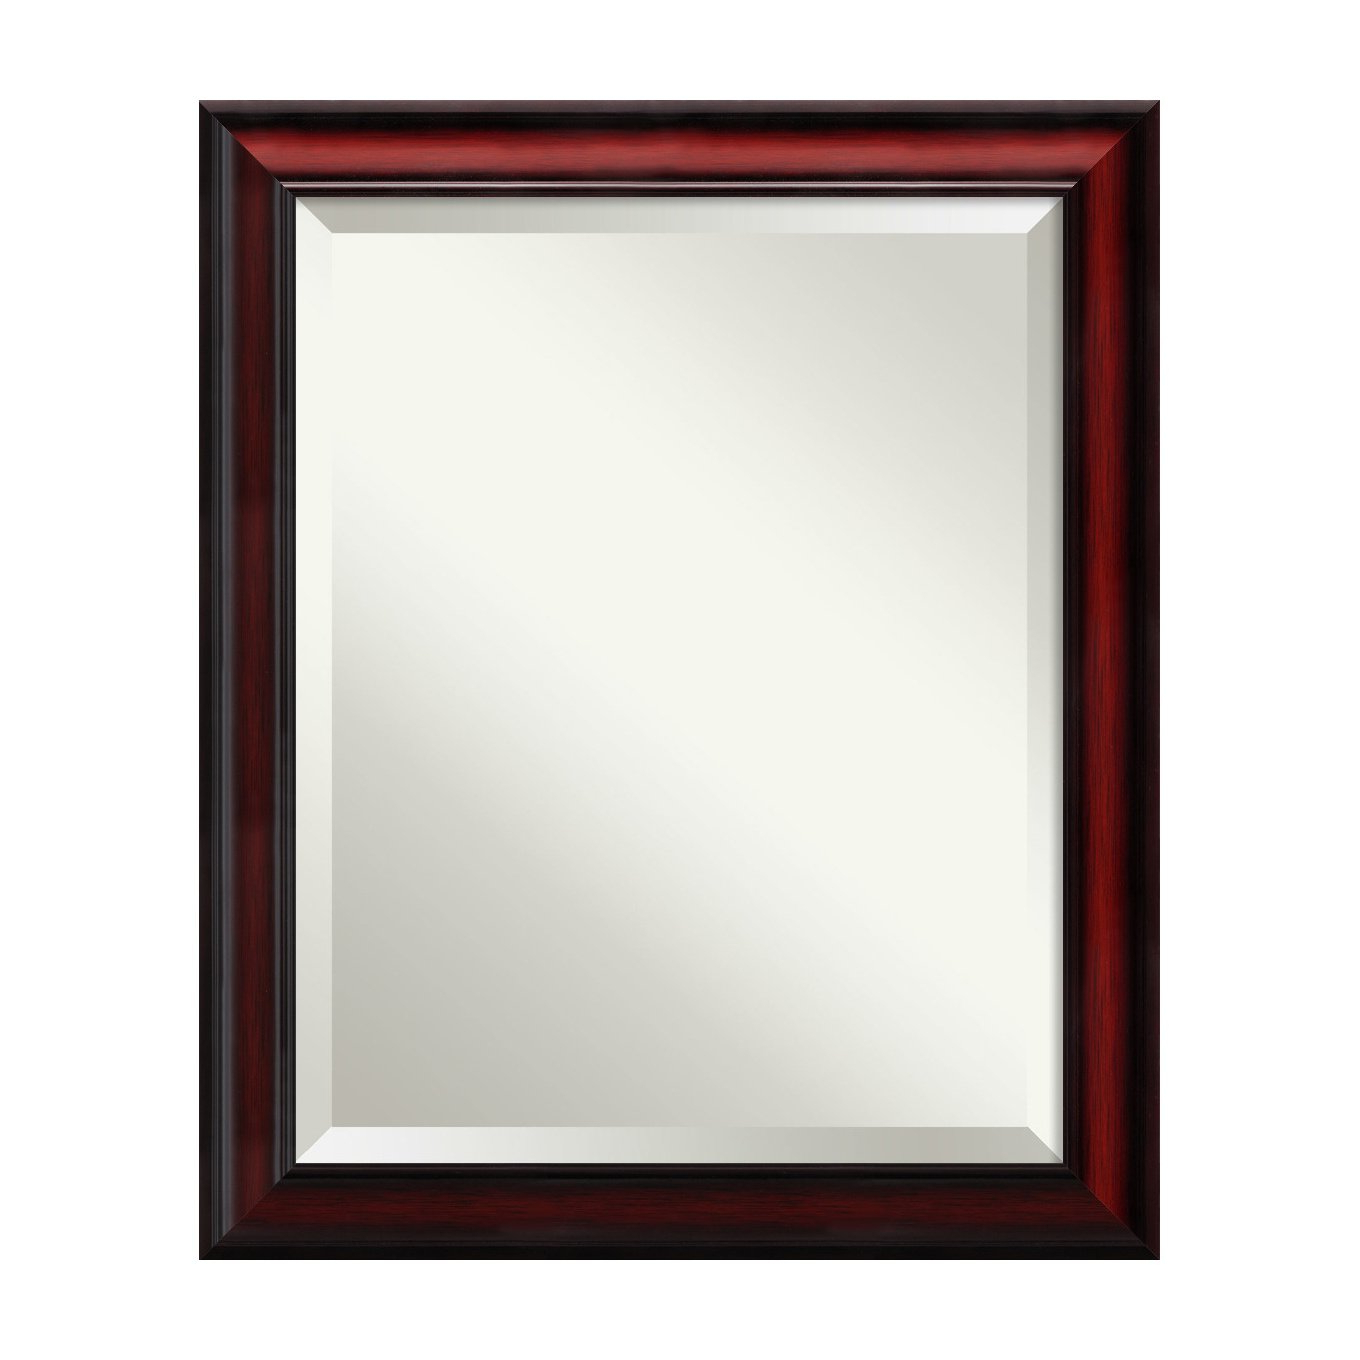 Solid Wood Wall Mirrors (View 8 of 20)